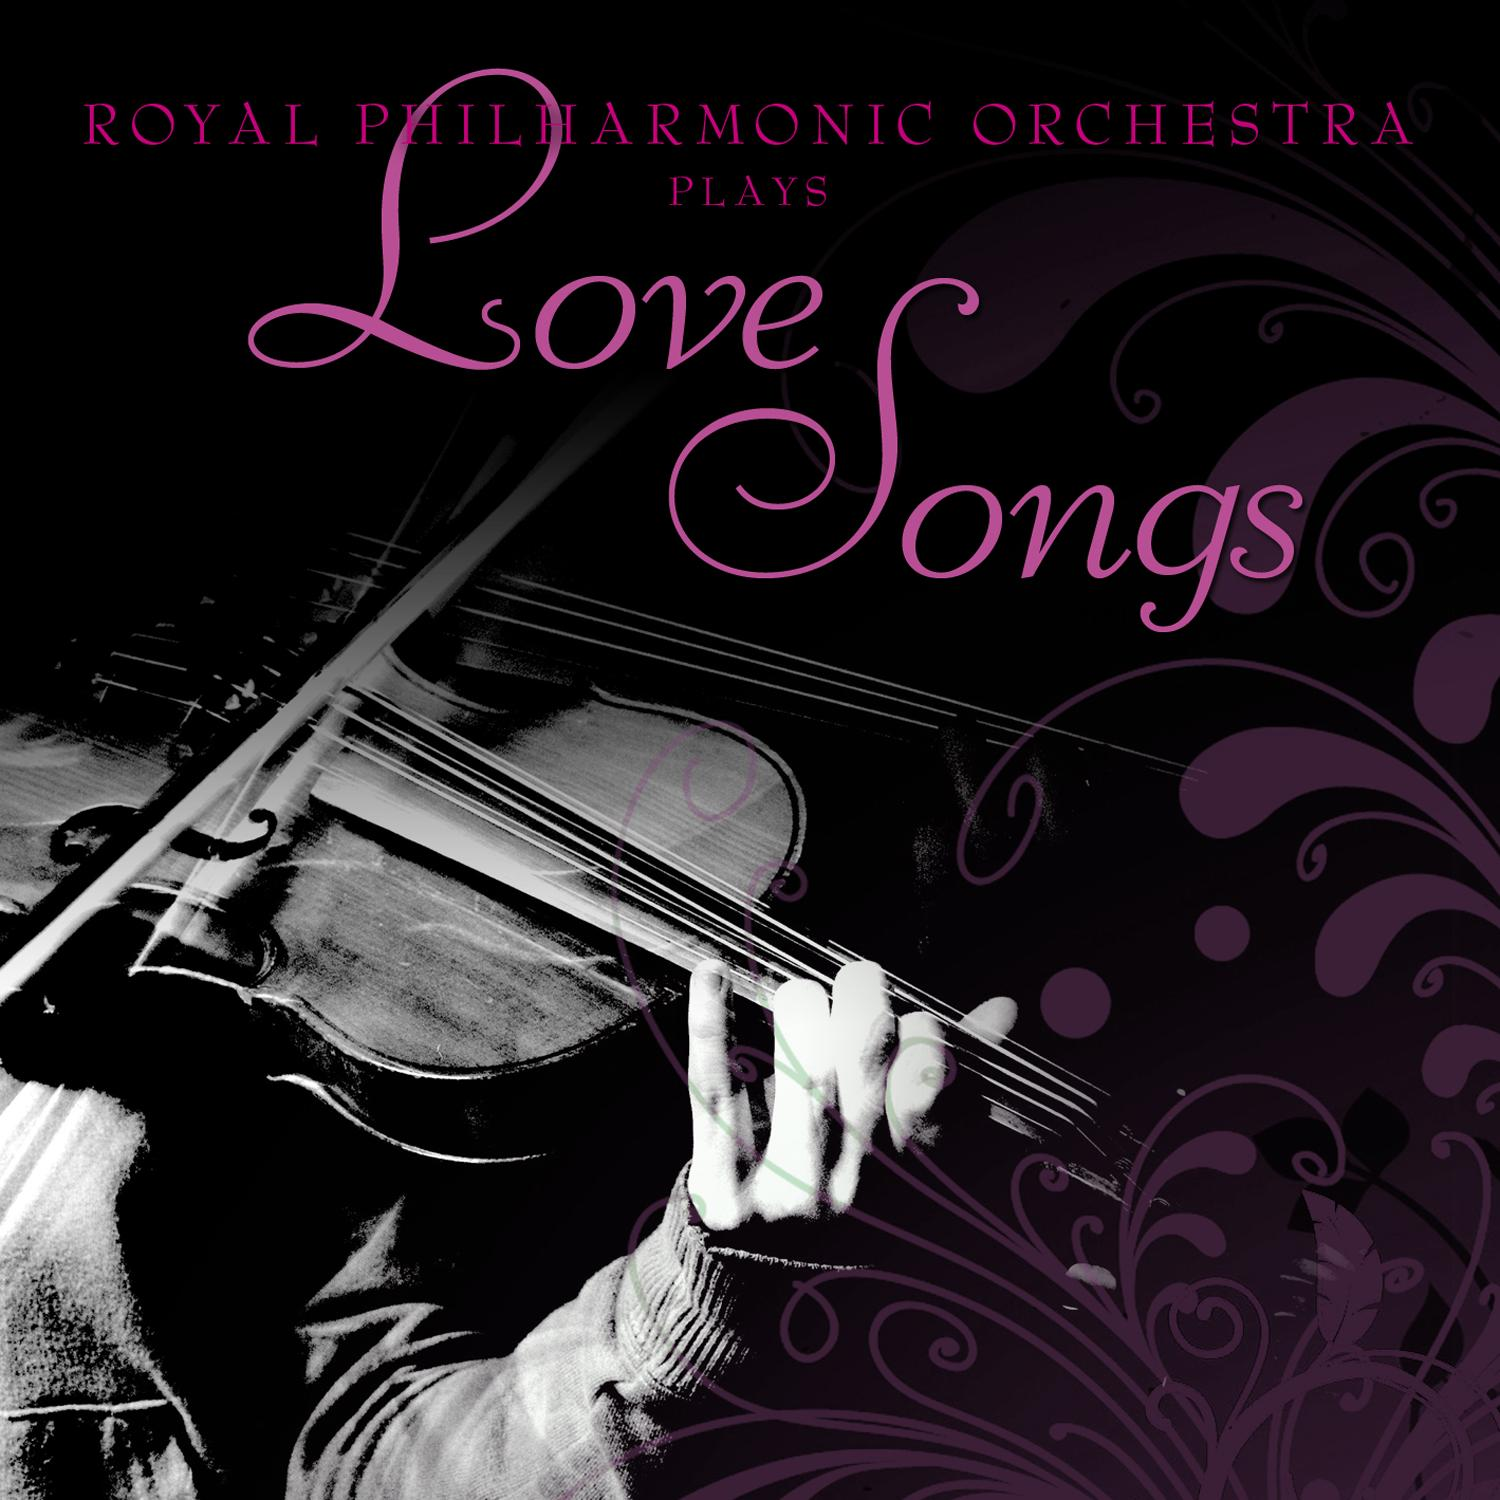 Royal Philharmonic Orchestra Plays Love Songs | Alexander Street, a